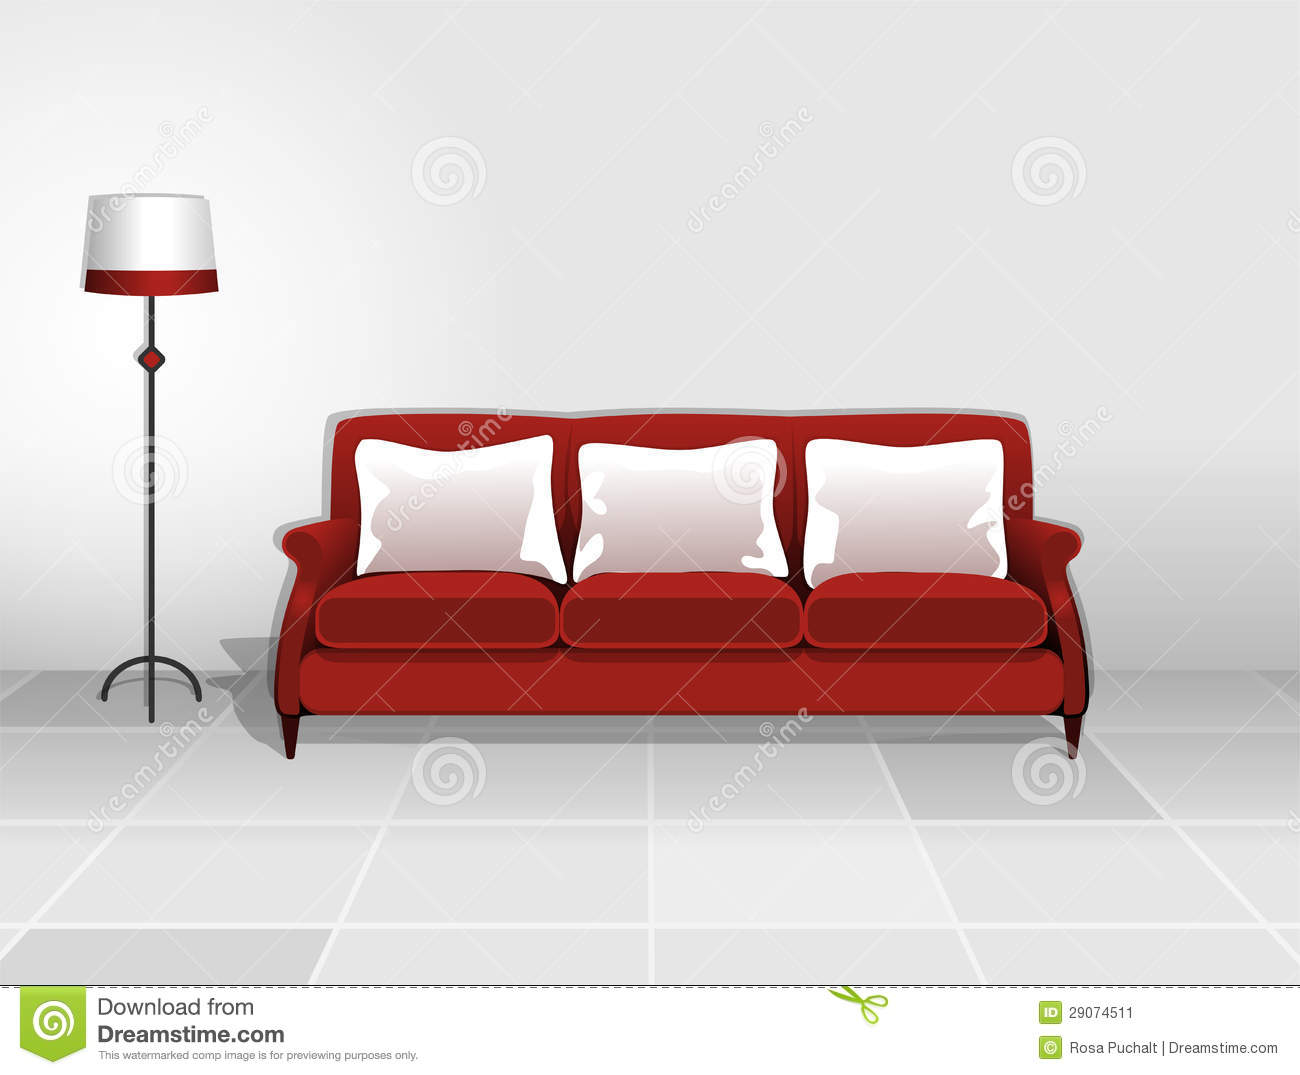 Superieur Red Sofa With White Cushions